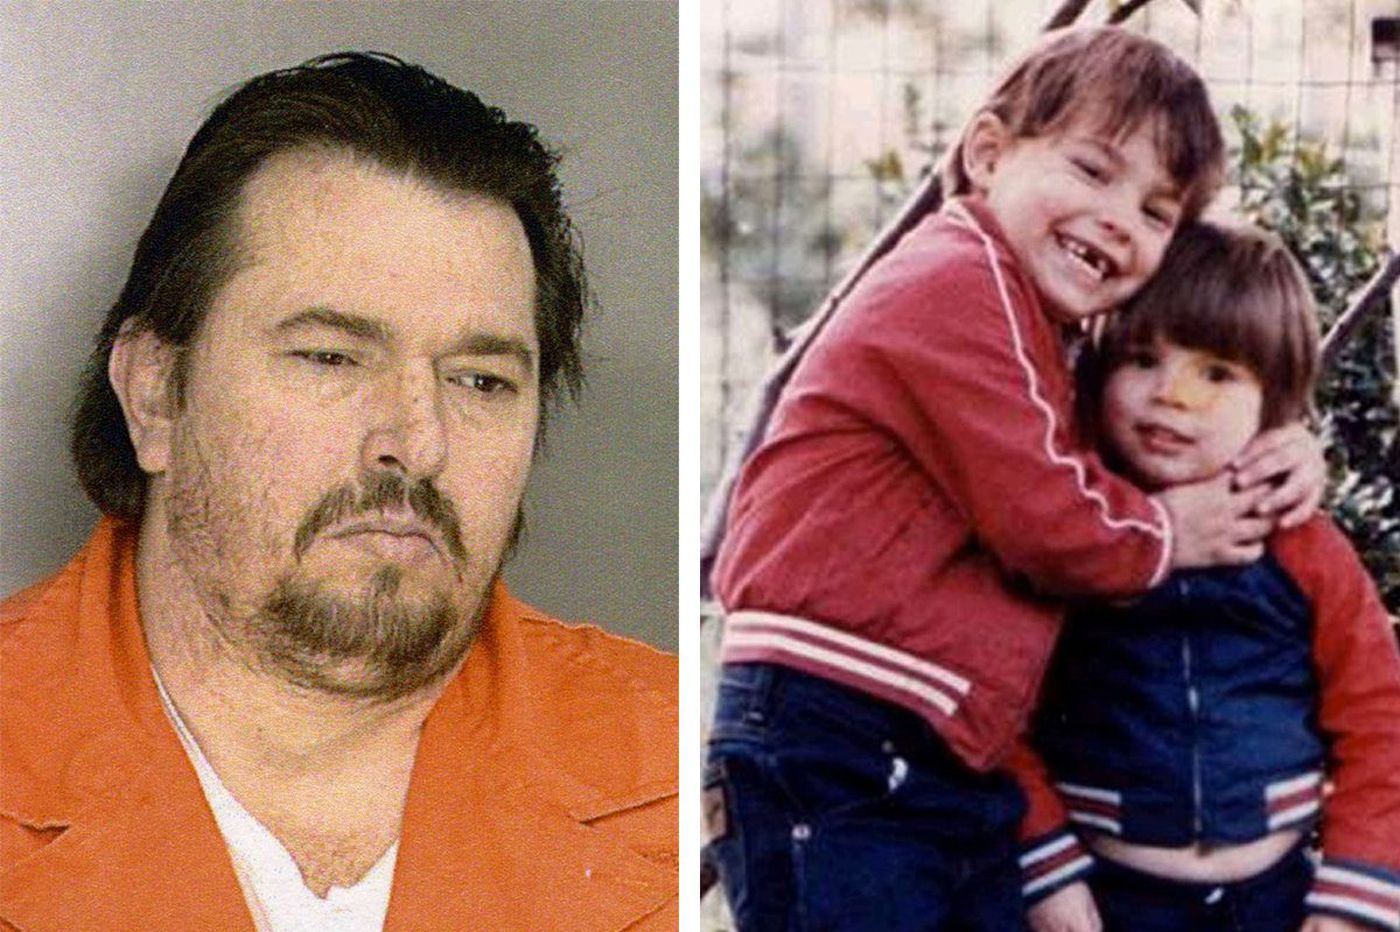 Daniel Dougherty awarded 3rd trial in 1985 arson deaths of sons